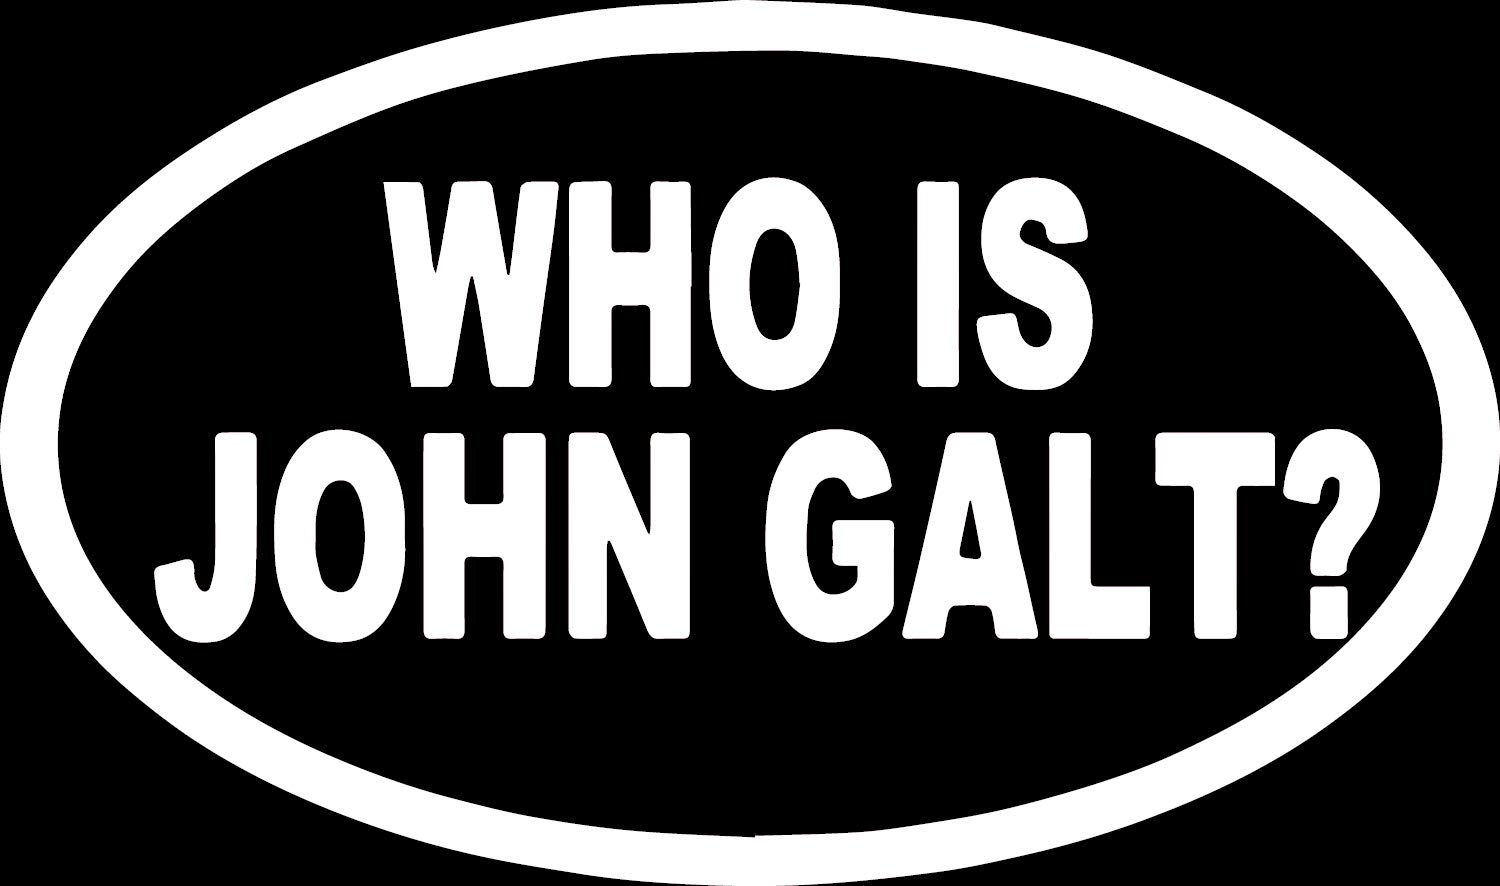 Angdest movie film who is john galt oval white set of 2 premium waterproof vinyl decal stickers for laptop phone accessory helmet car window bumper mug